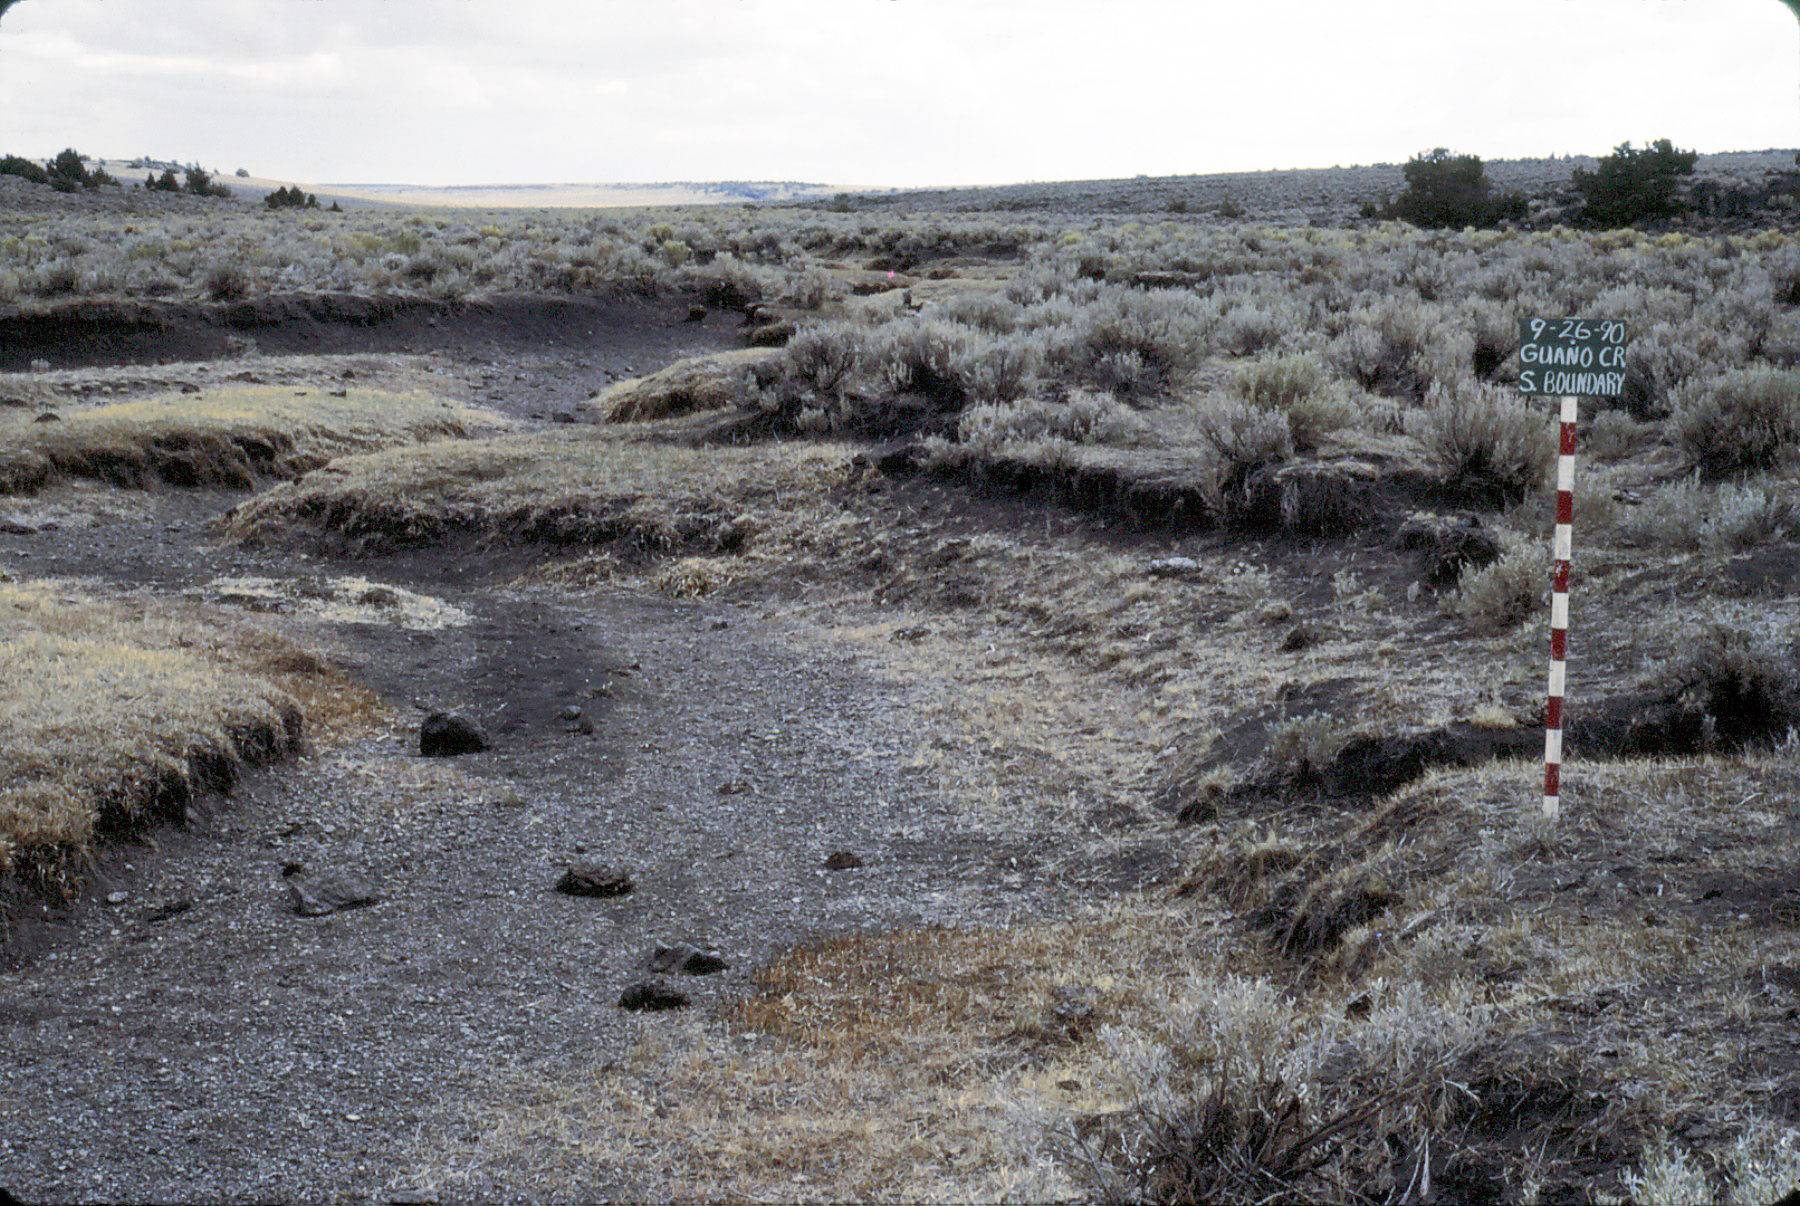 Guano Creek, BLM - Oct. 1990